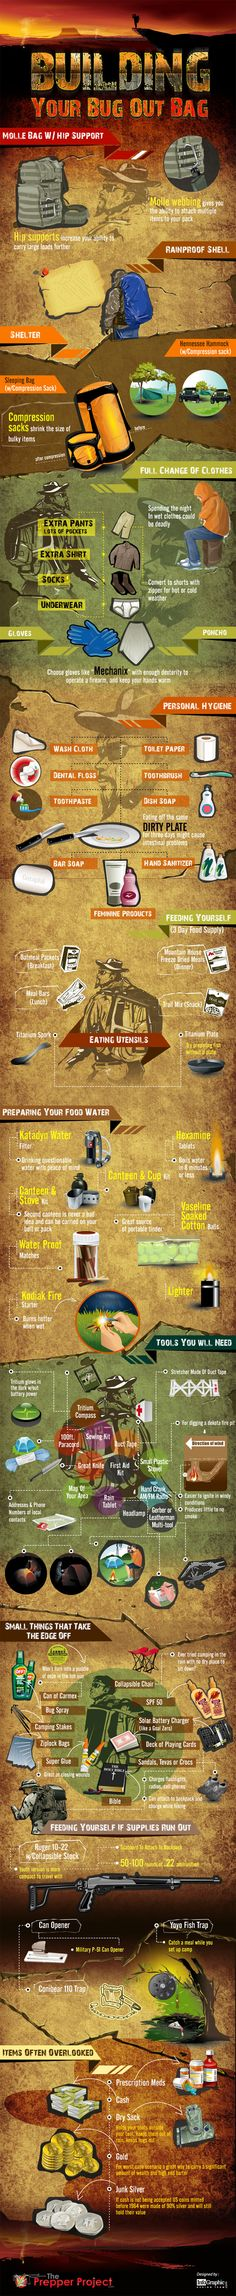 Disaster Preparedness April 23, 2013 Looking for a bug out bag checklist to make sure your bug out bag isn't lacking anything critical?  Instead of another long written post about bug out bags, we thought we'd put one out there in pictorial form.  Bug Out Bag Checklist Infographic